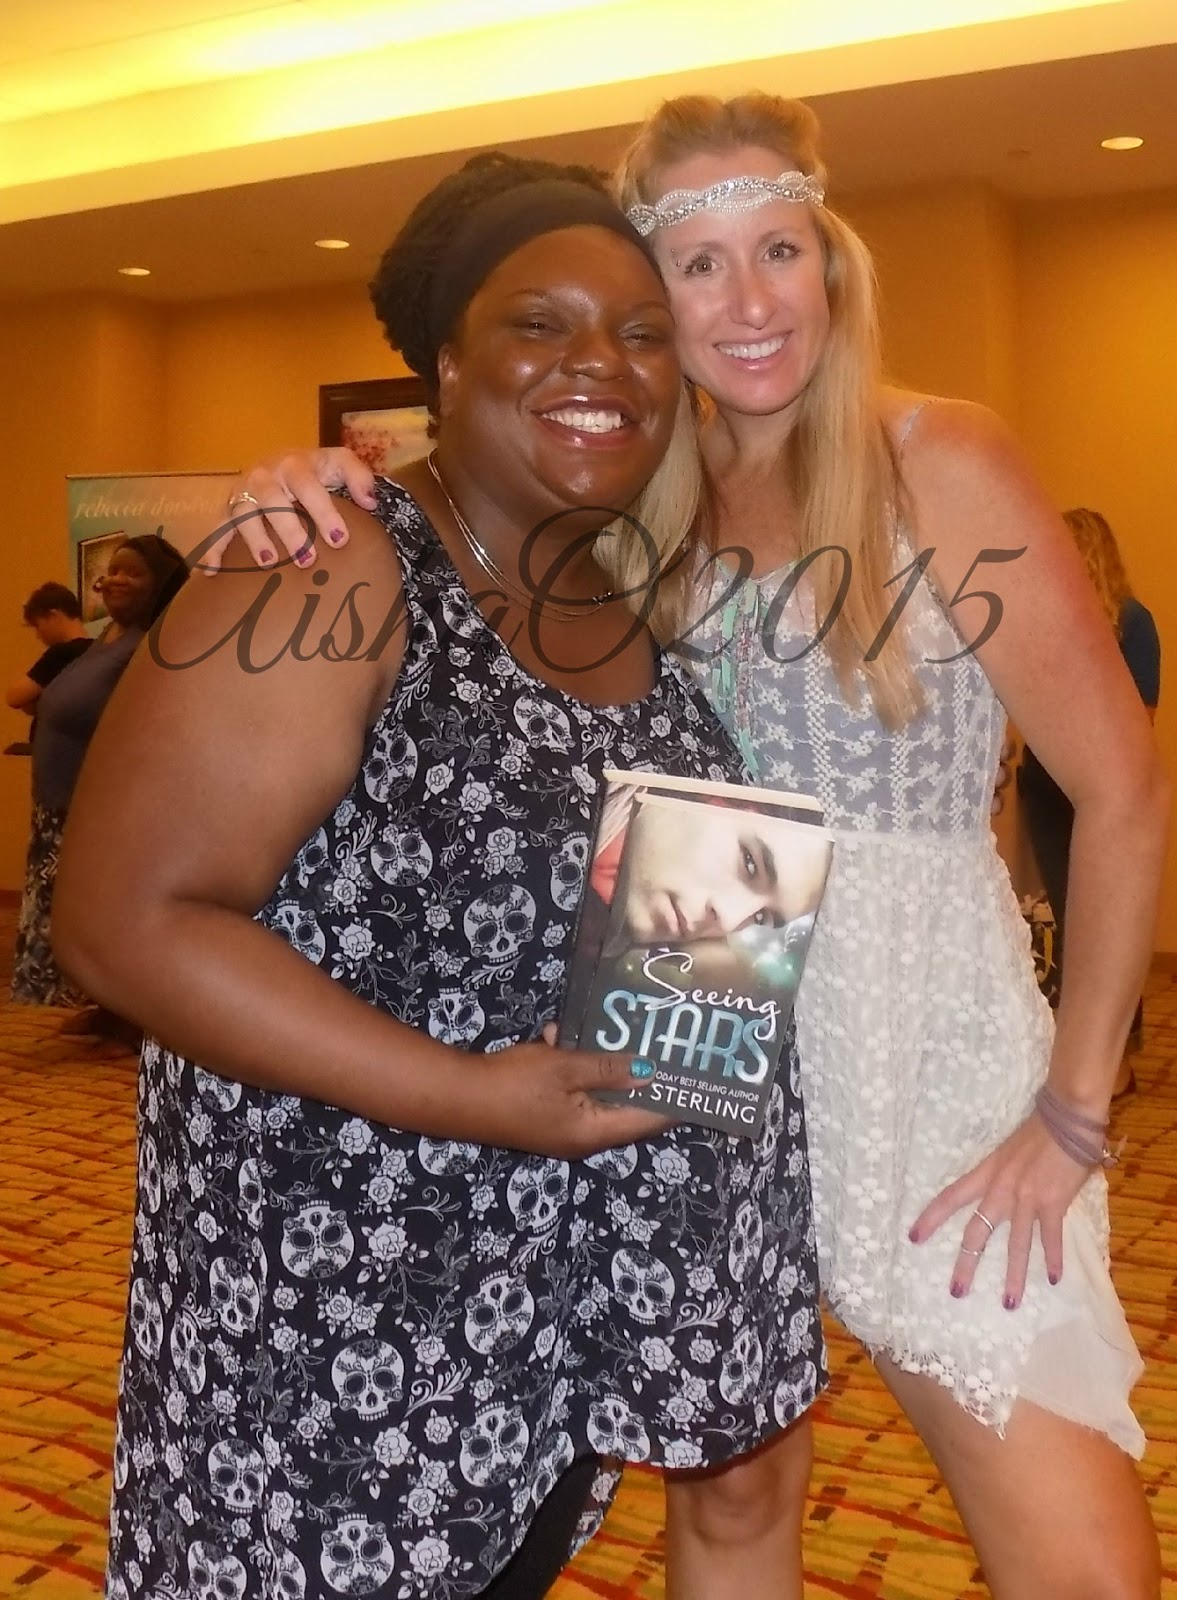 Bewitching bibliophile june 2015 then i moved onto j sterling and i love her potty mouth she had an awesome headband and she made me laugh she shared some great stories about her time in fandeluxe Document